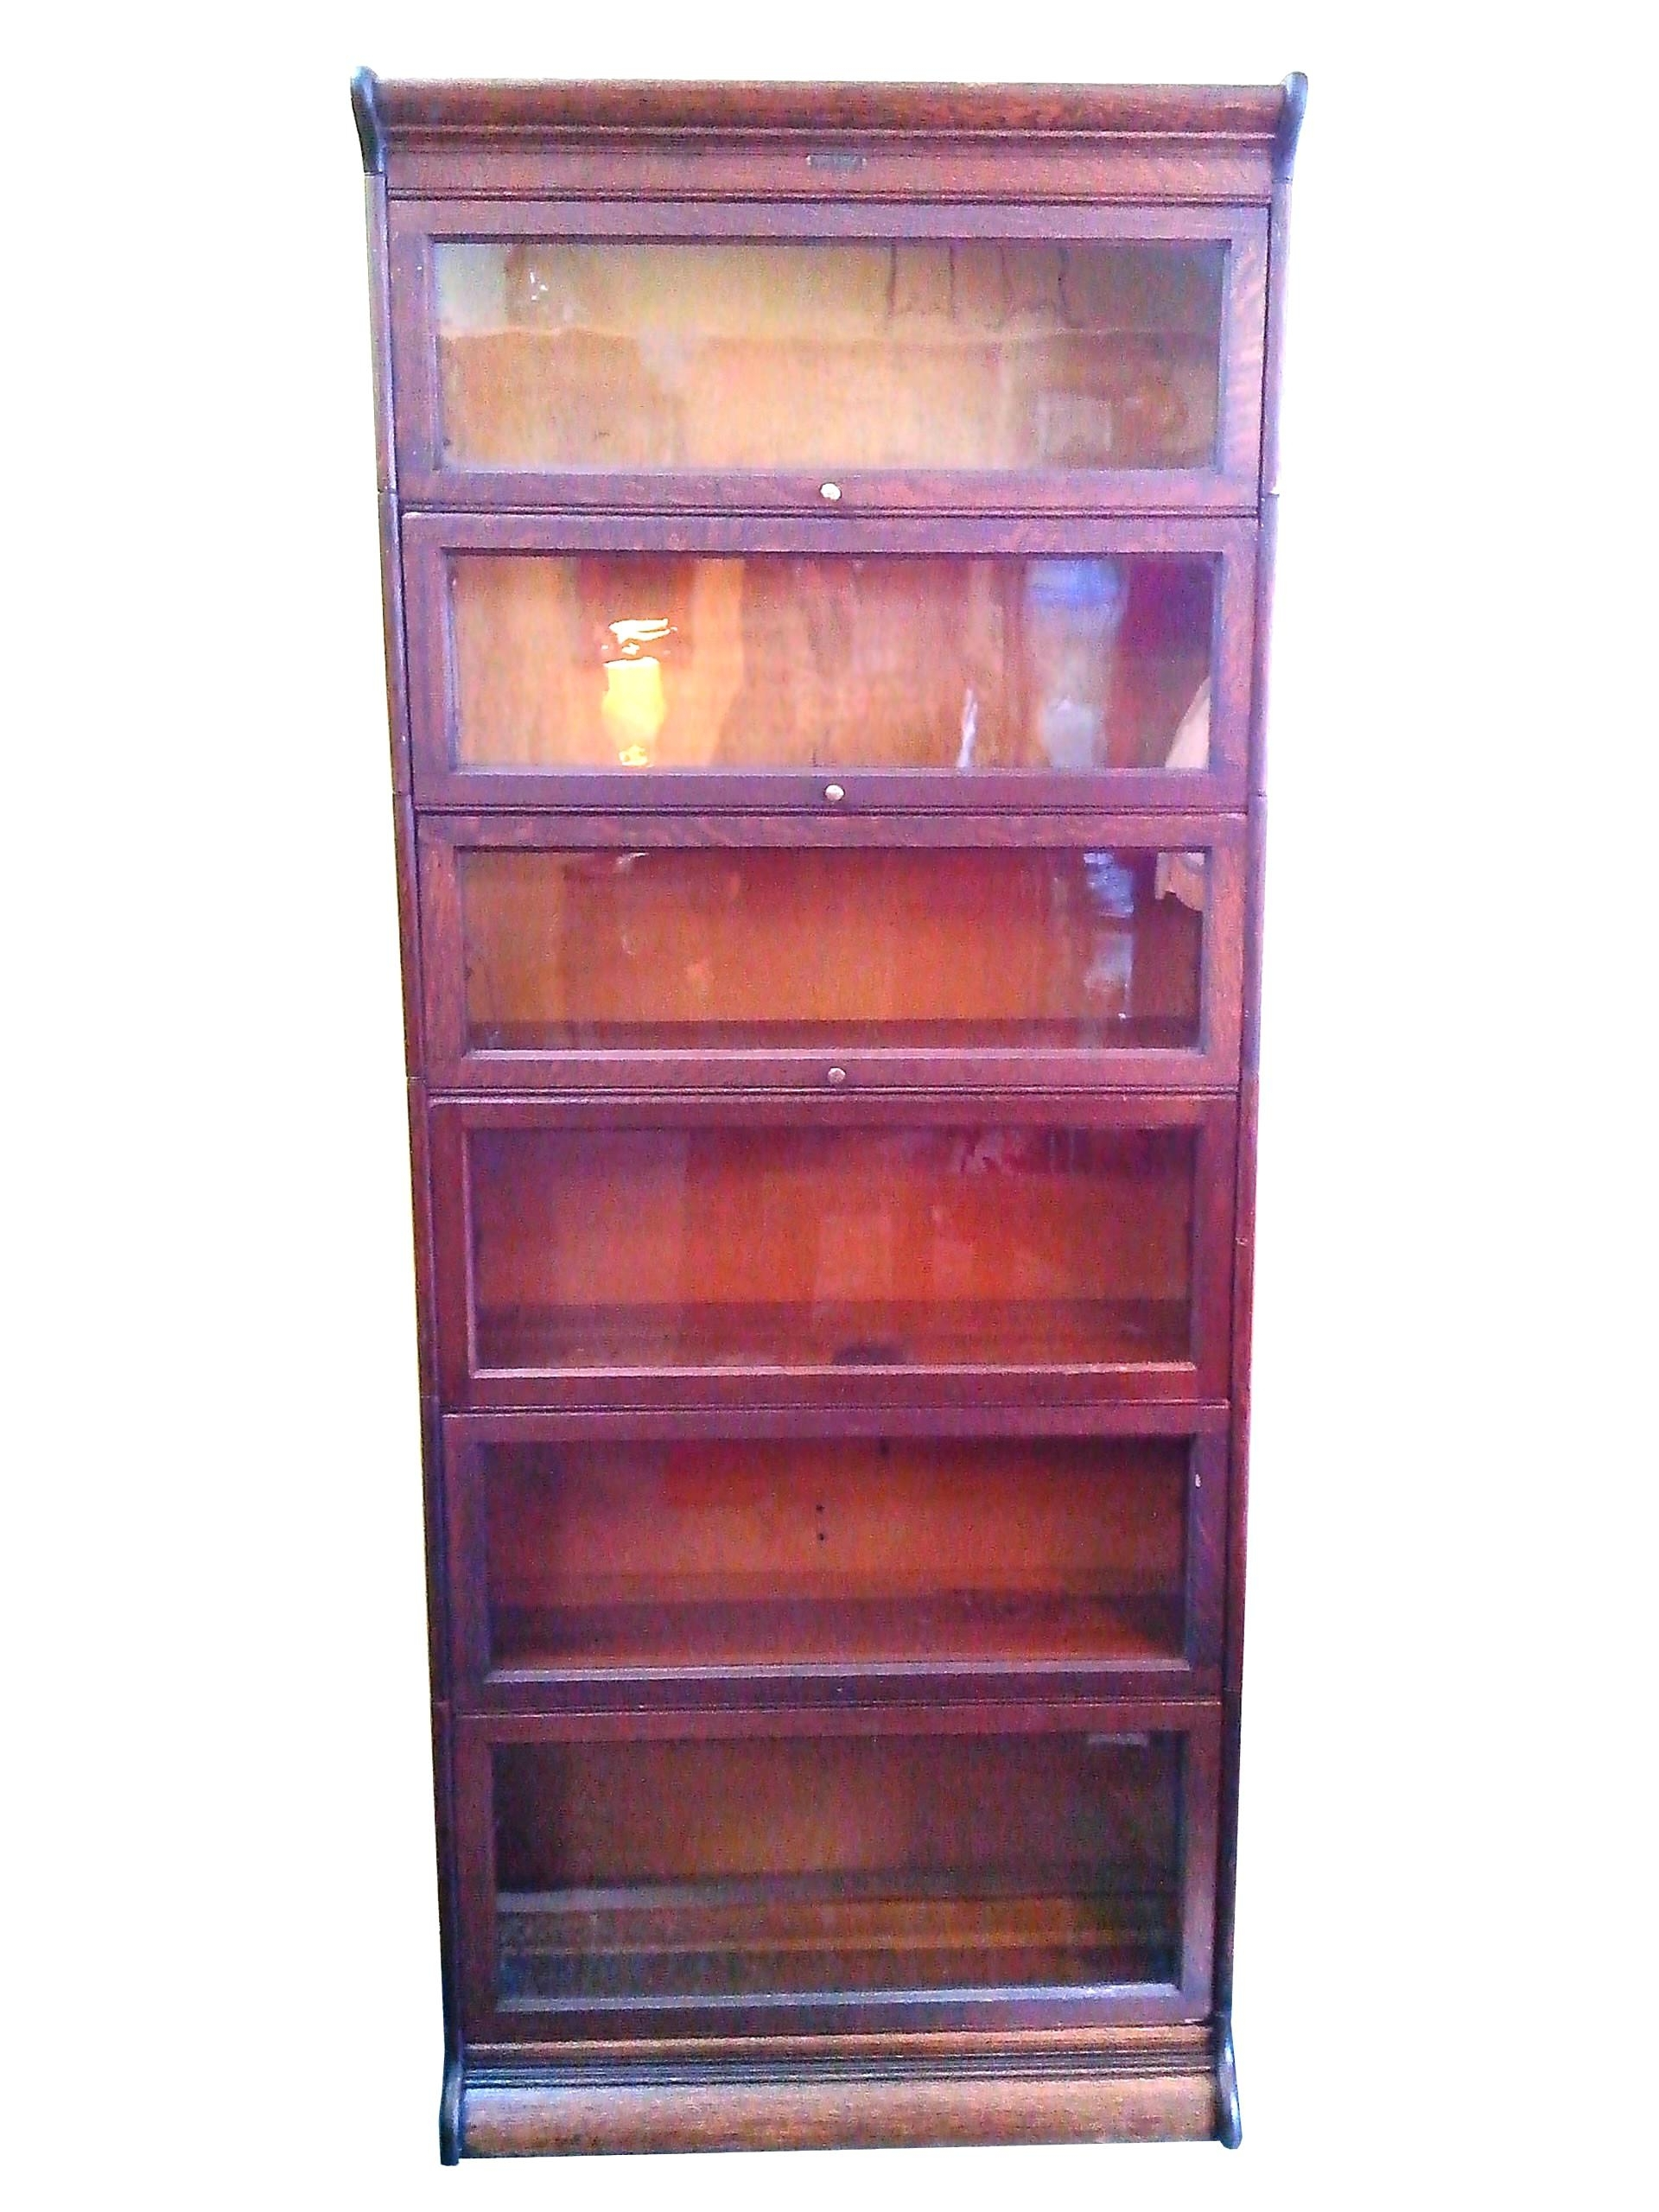 Widely Used Lawyers Bookcase Lawyers Bookcases Glass Doors Lawyers Bookcase Throughout Craigslist Bookcases (View 15 of 15)